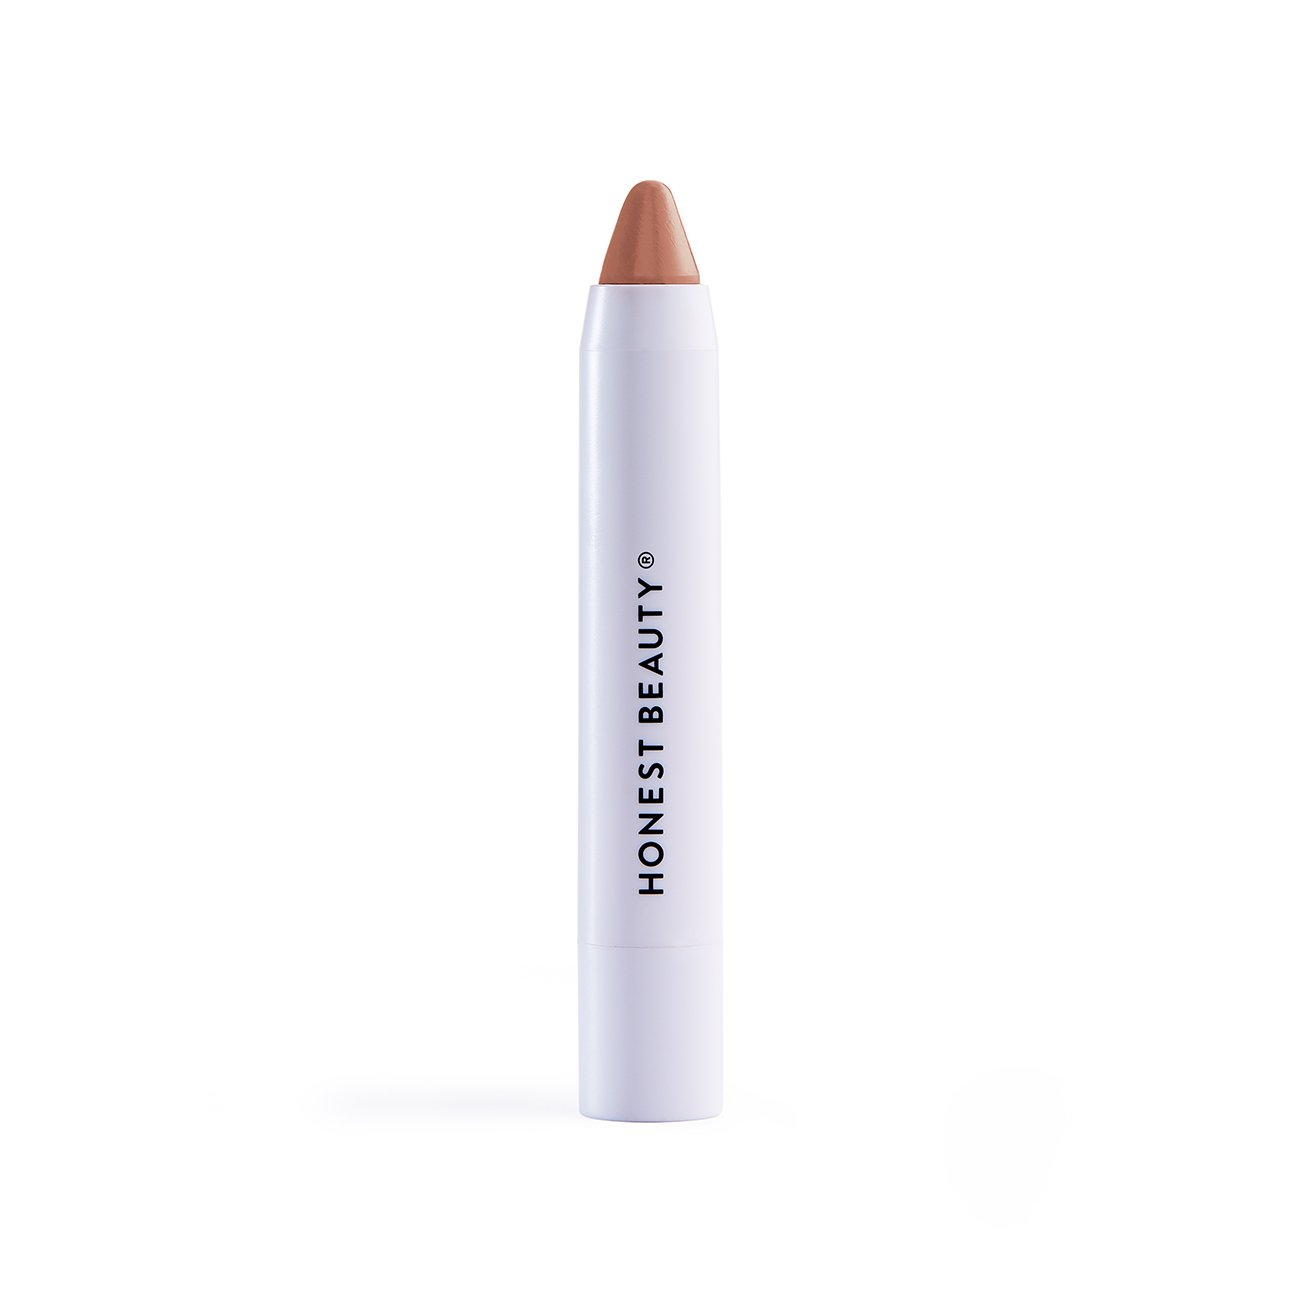 Honest Beauty Lip Crayon-Demi-Matte, Honey   Lightweight, High-Impact Color with Jojoba Oil & Shea Butter   Paraben Free, Silicone Free, Dermatologist Tested, Cruelty Free   0.105 oz.